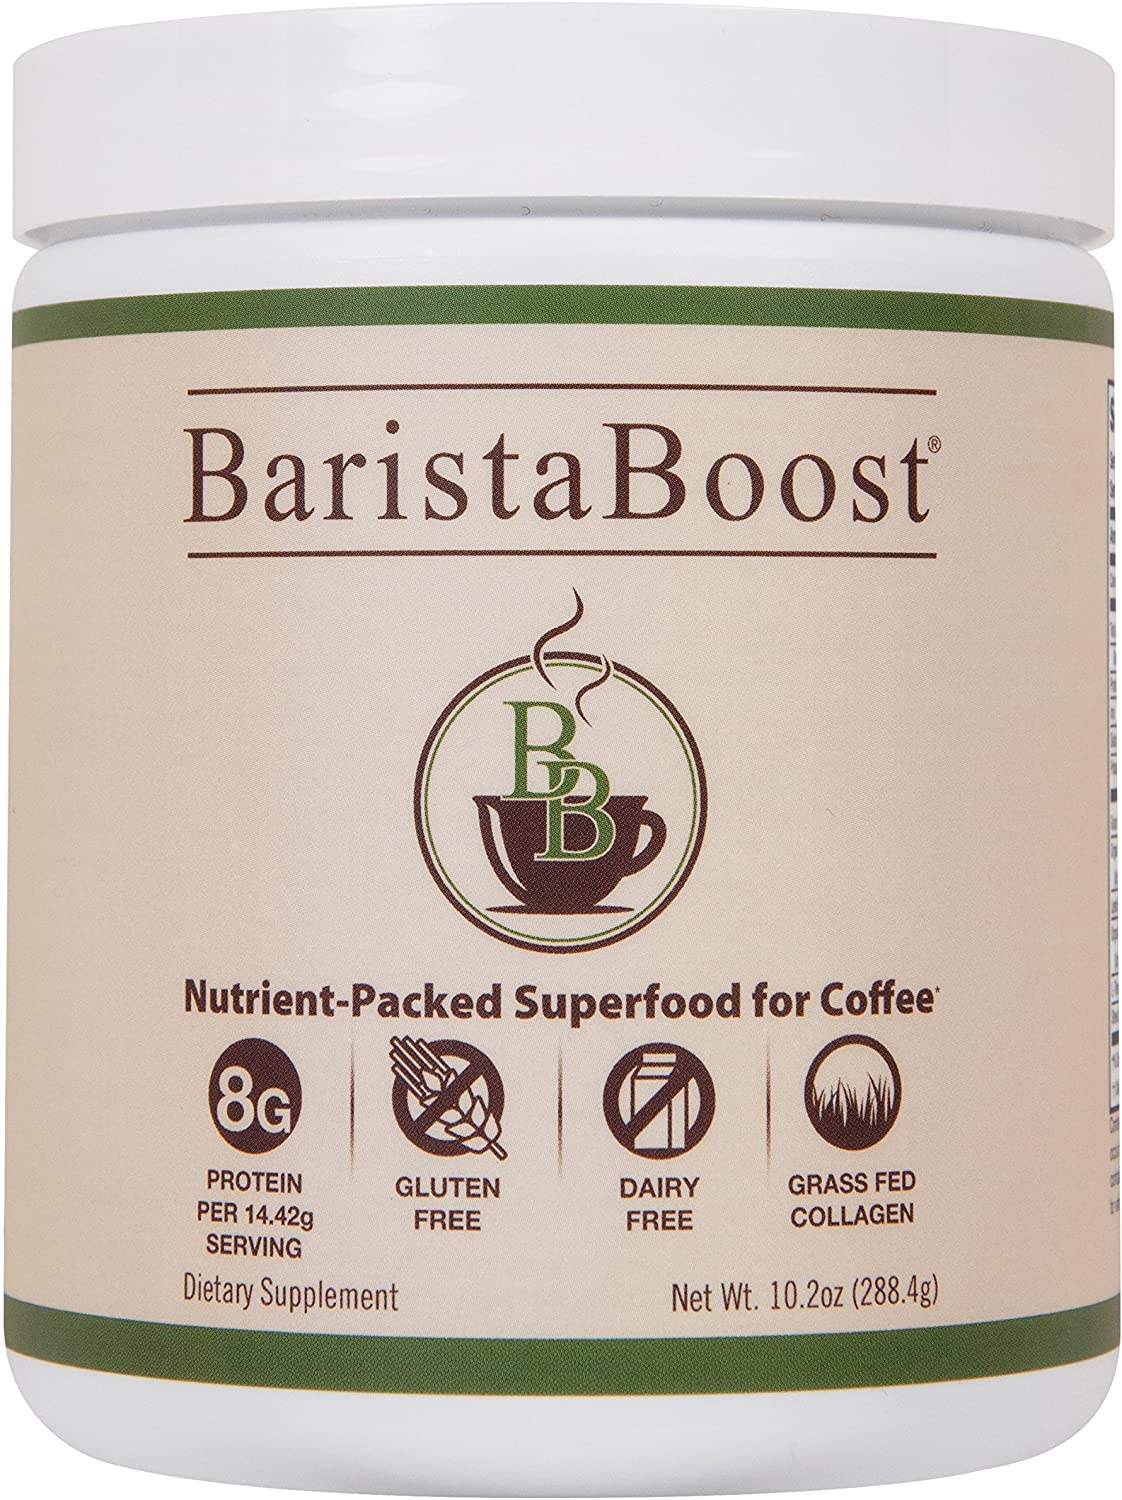 1. BaristaBoost - Premium Superfood for Coffee